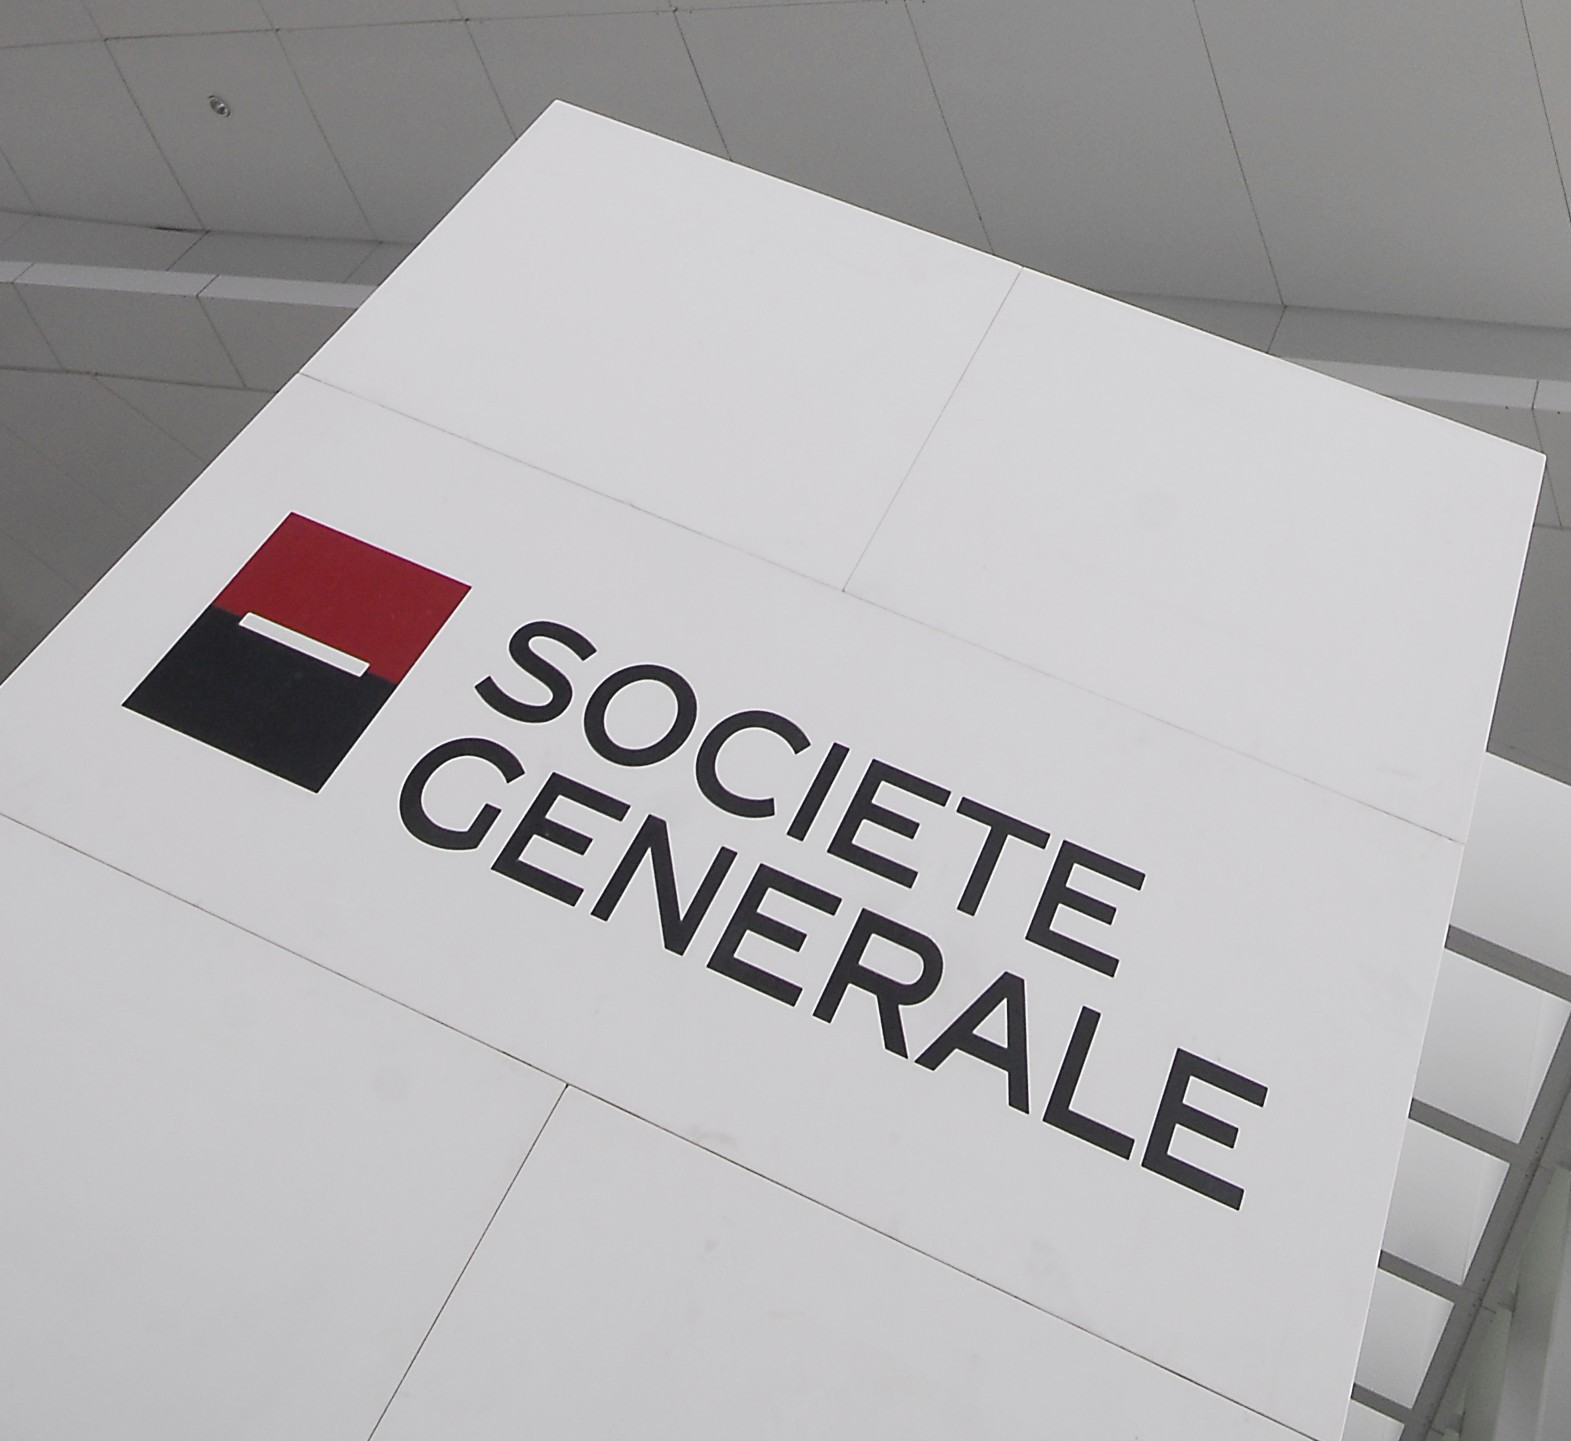 societe generale kerviels trade Rogue trader jerome kerviel almost ruined societe generale - now he has won a payout after getting fired the panel ordered societe generale to pay kerviel roughly €450,000 ($685,000) by a panel of employers and trade union representatives.